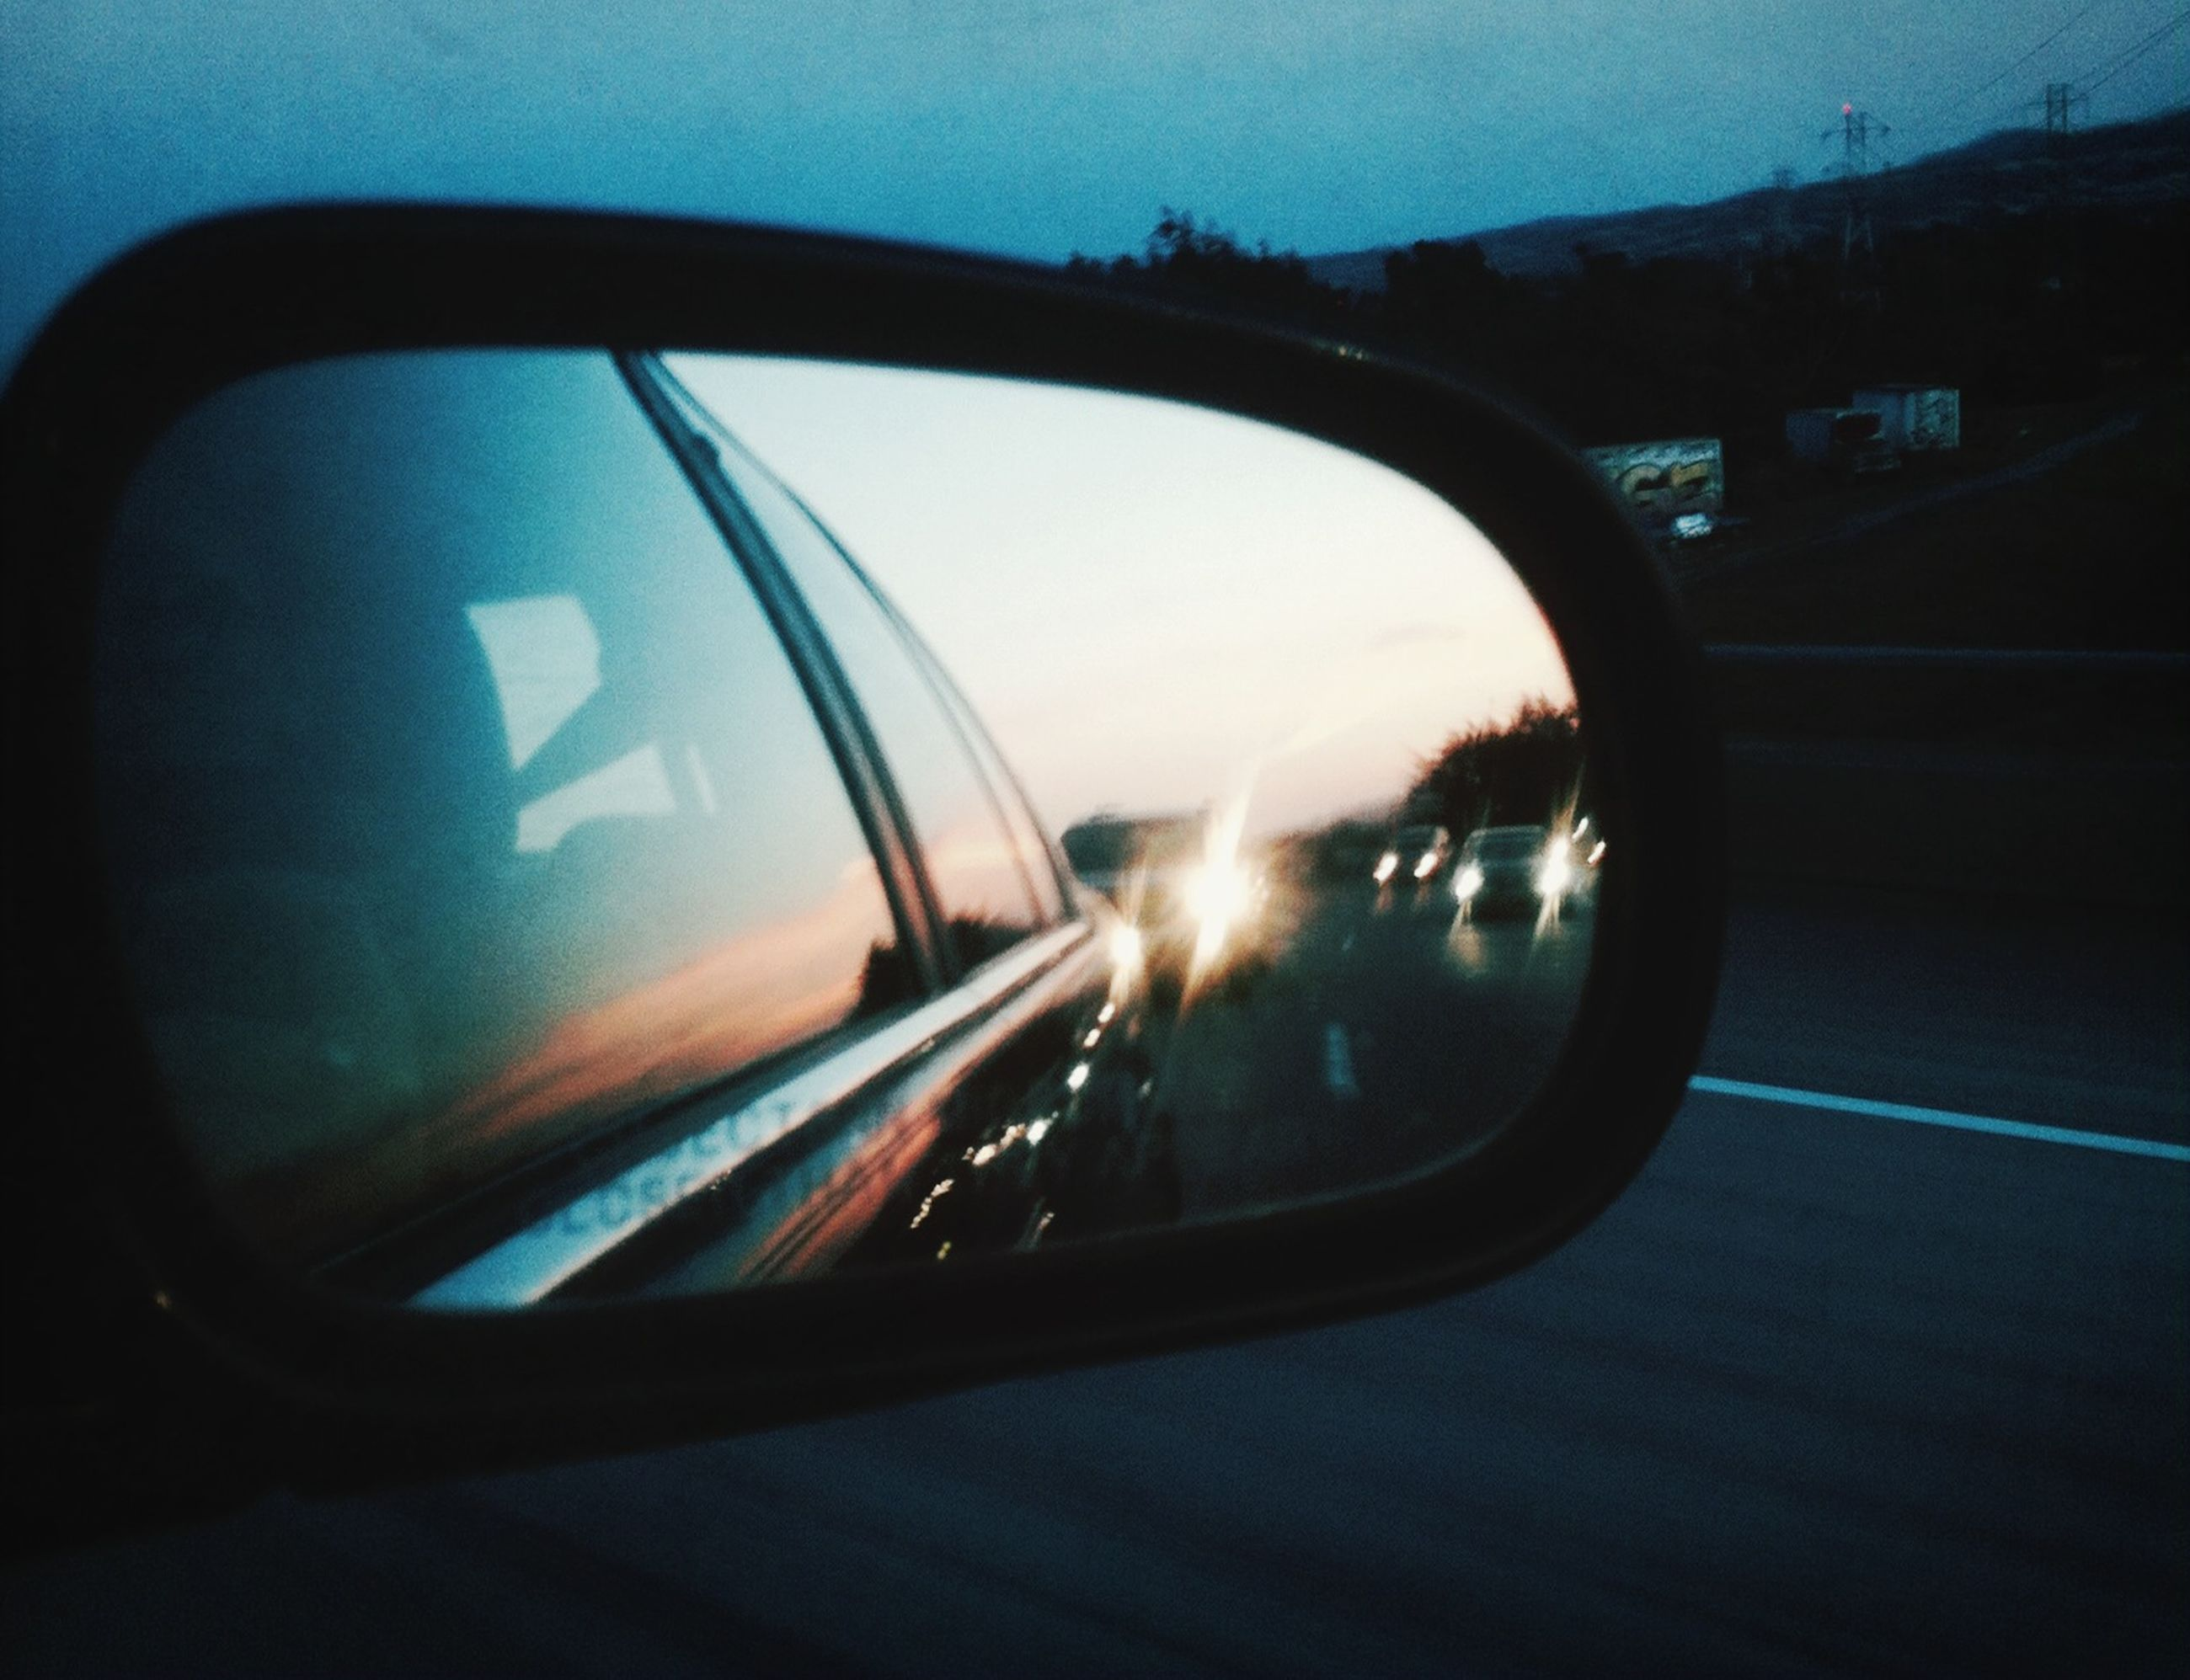 transportation, mode of transport, car, land vehicle, side-view mirror, glass - material, reflection, transparent, vehicle interior, window, car interior, road, sky, travel, on the move, street, sunset, windshield, part of, headlight